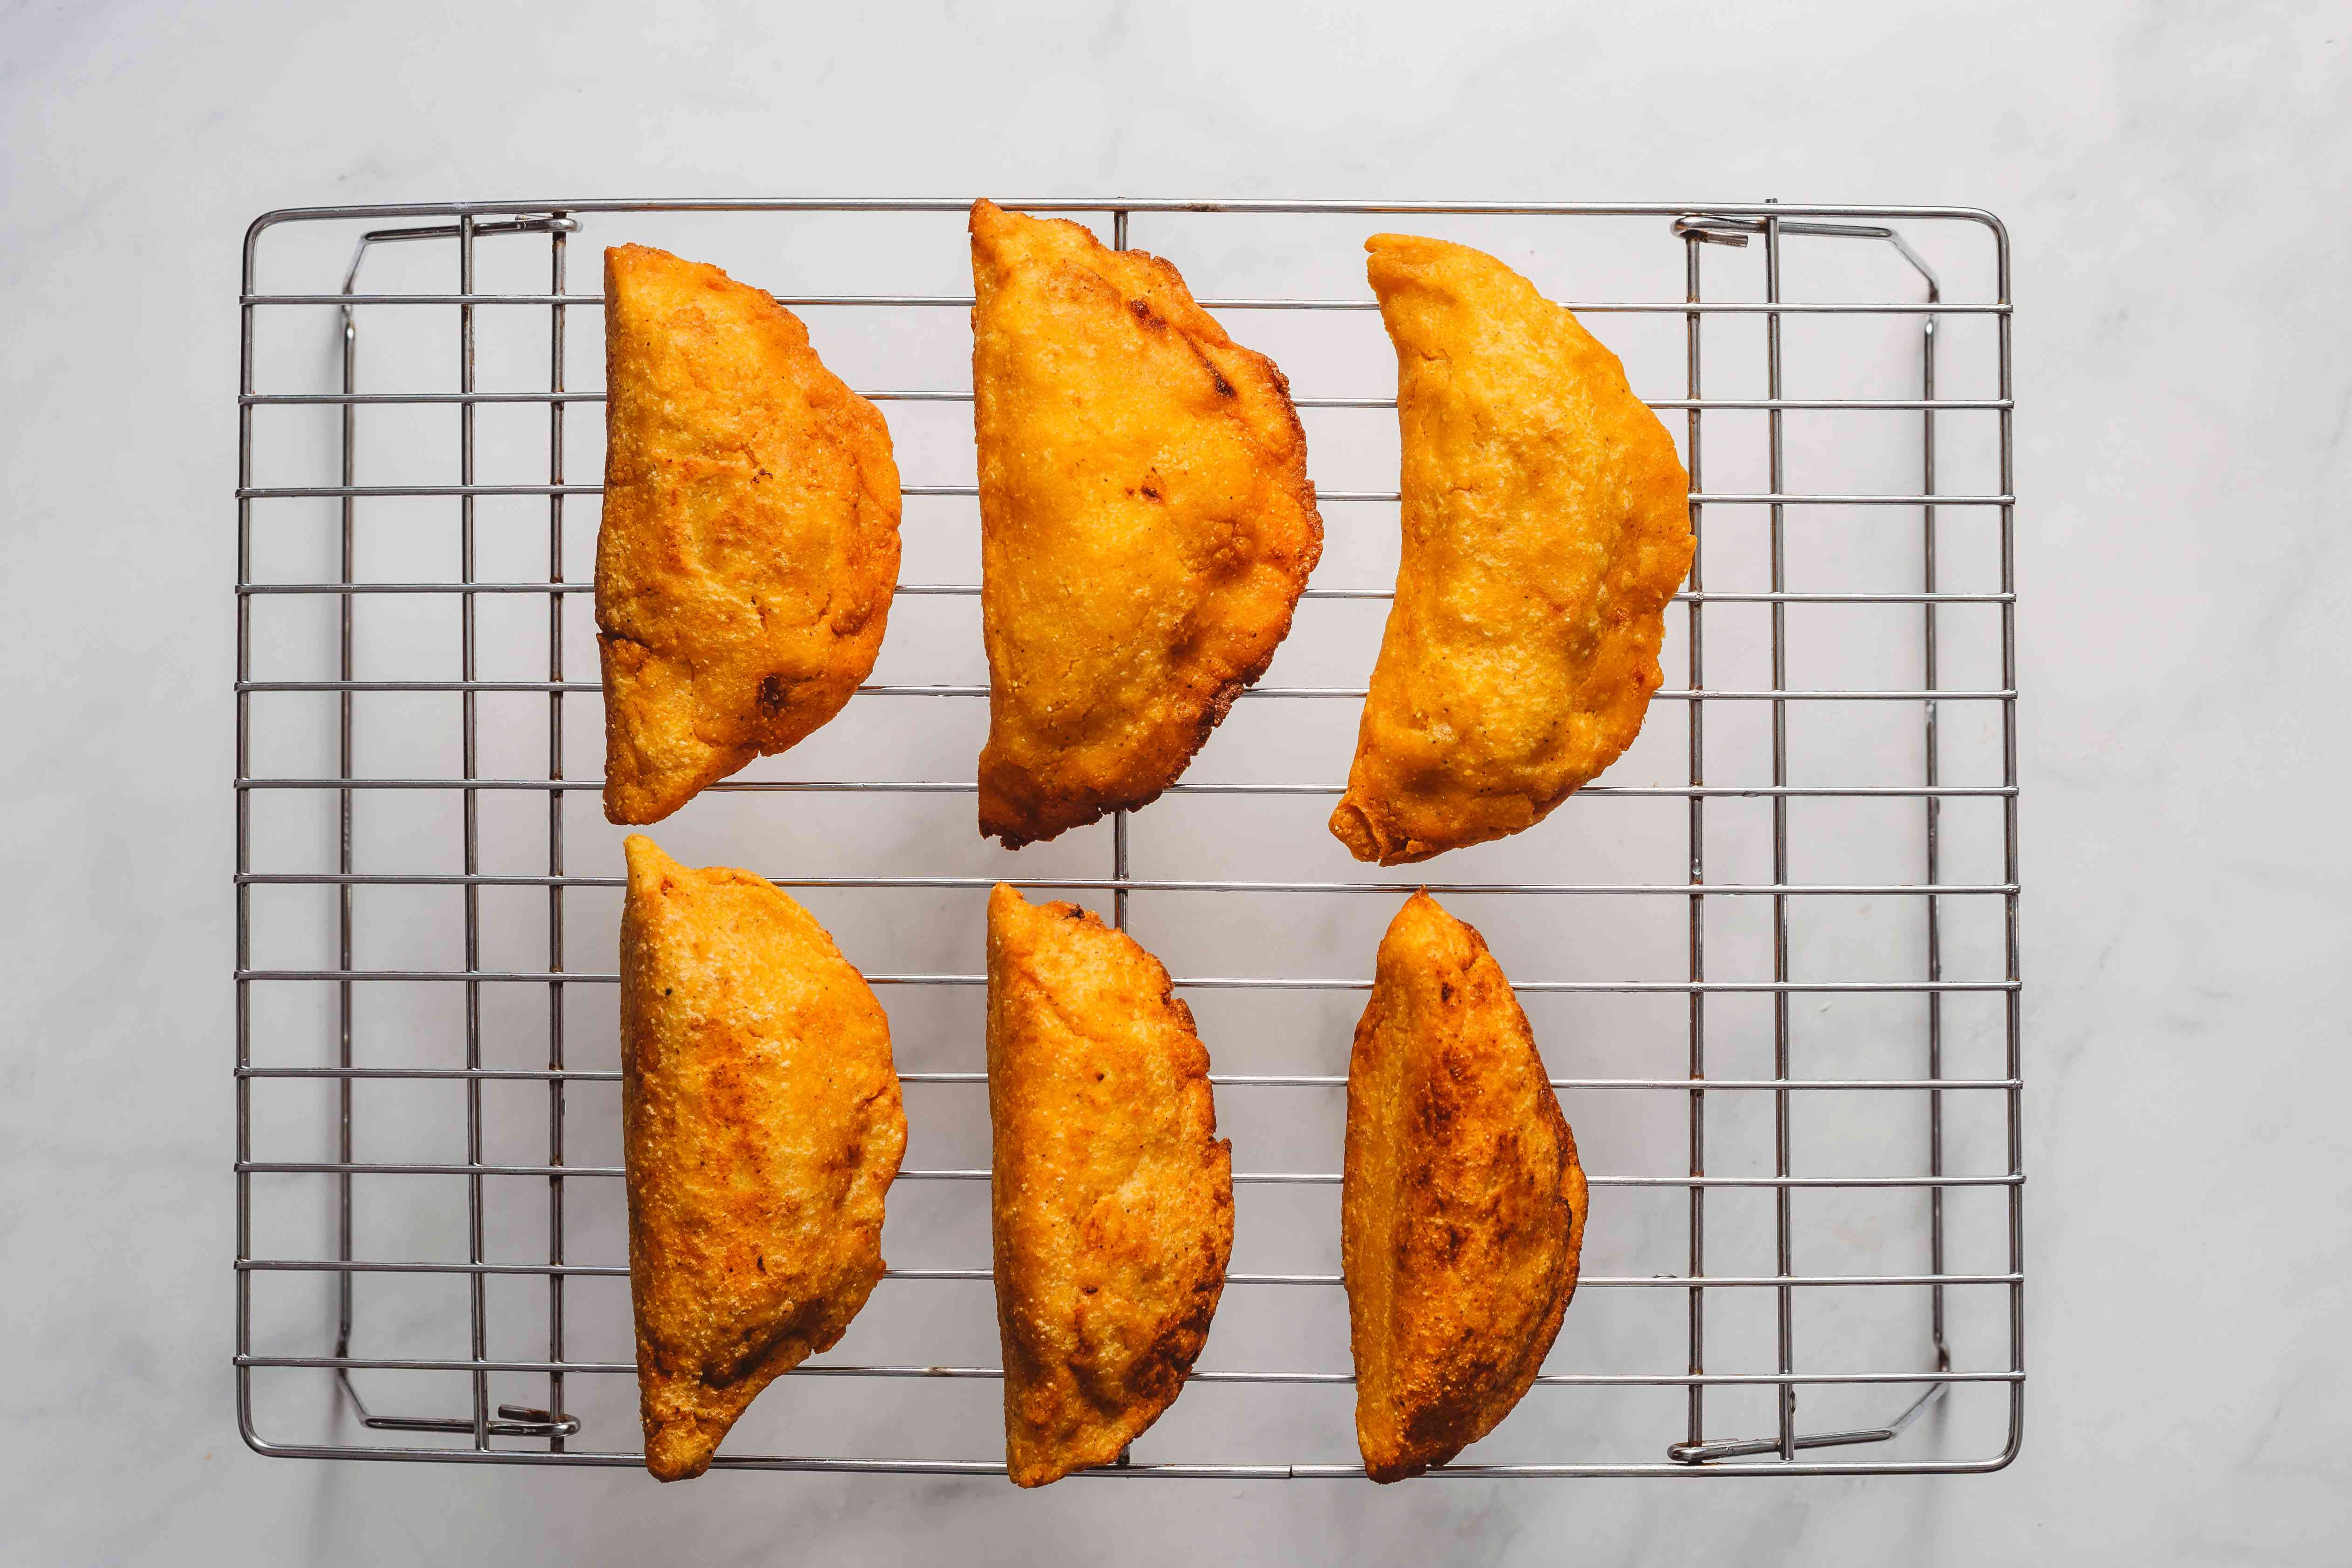 Traditional Fried Mexican Quesadillas on a cooling rack